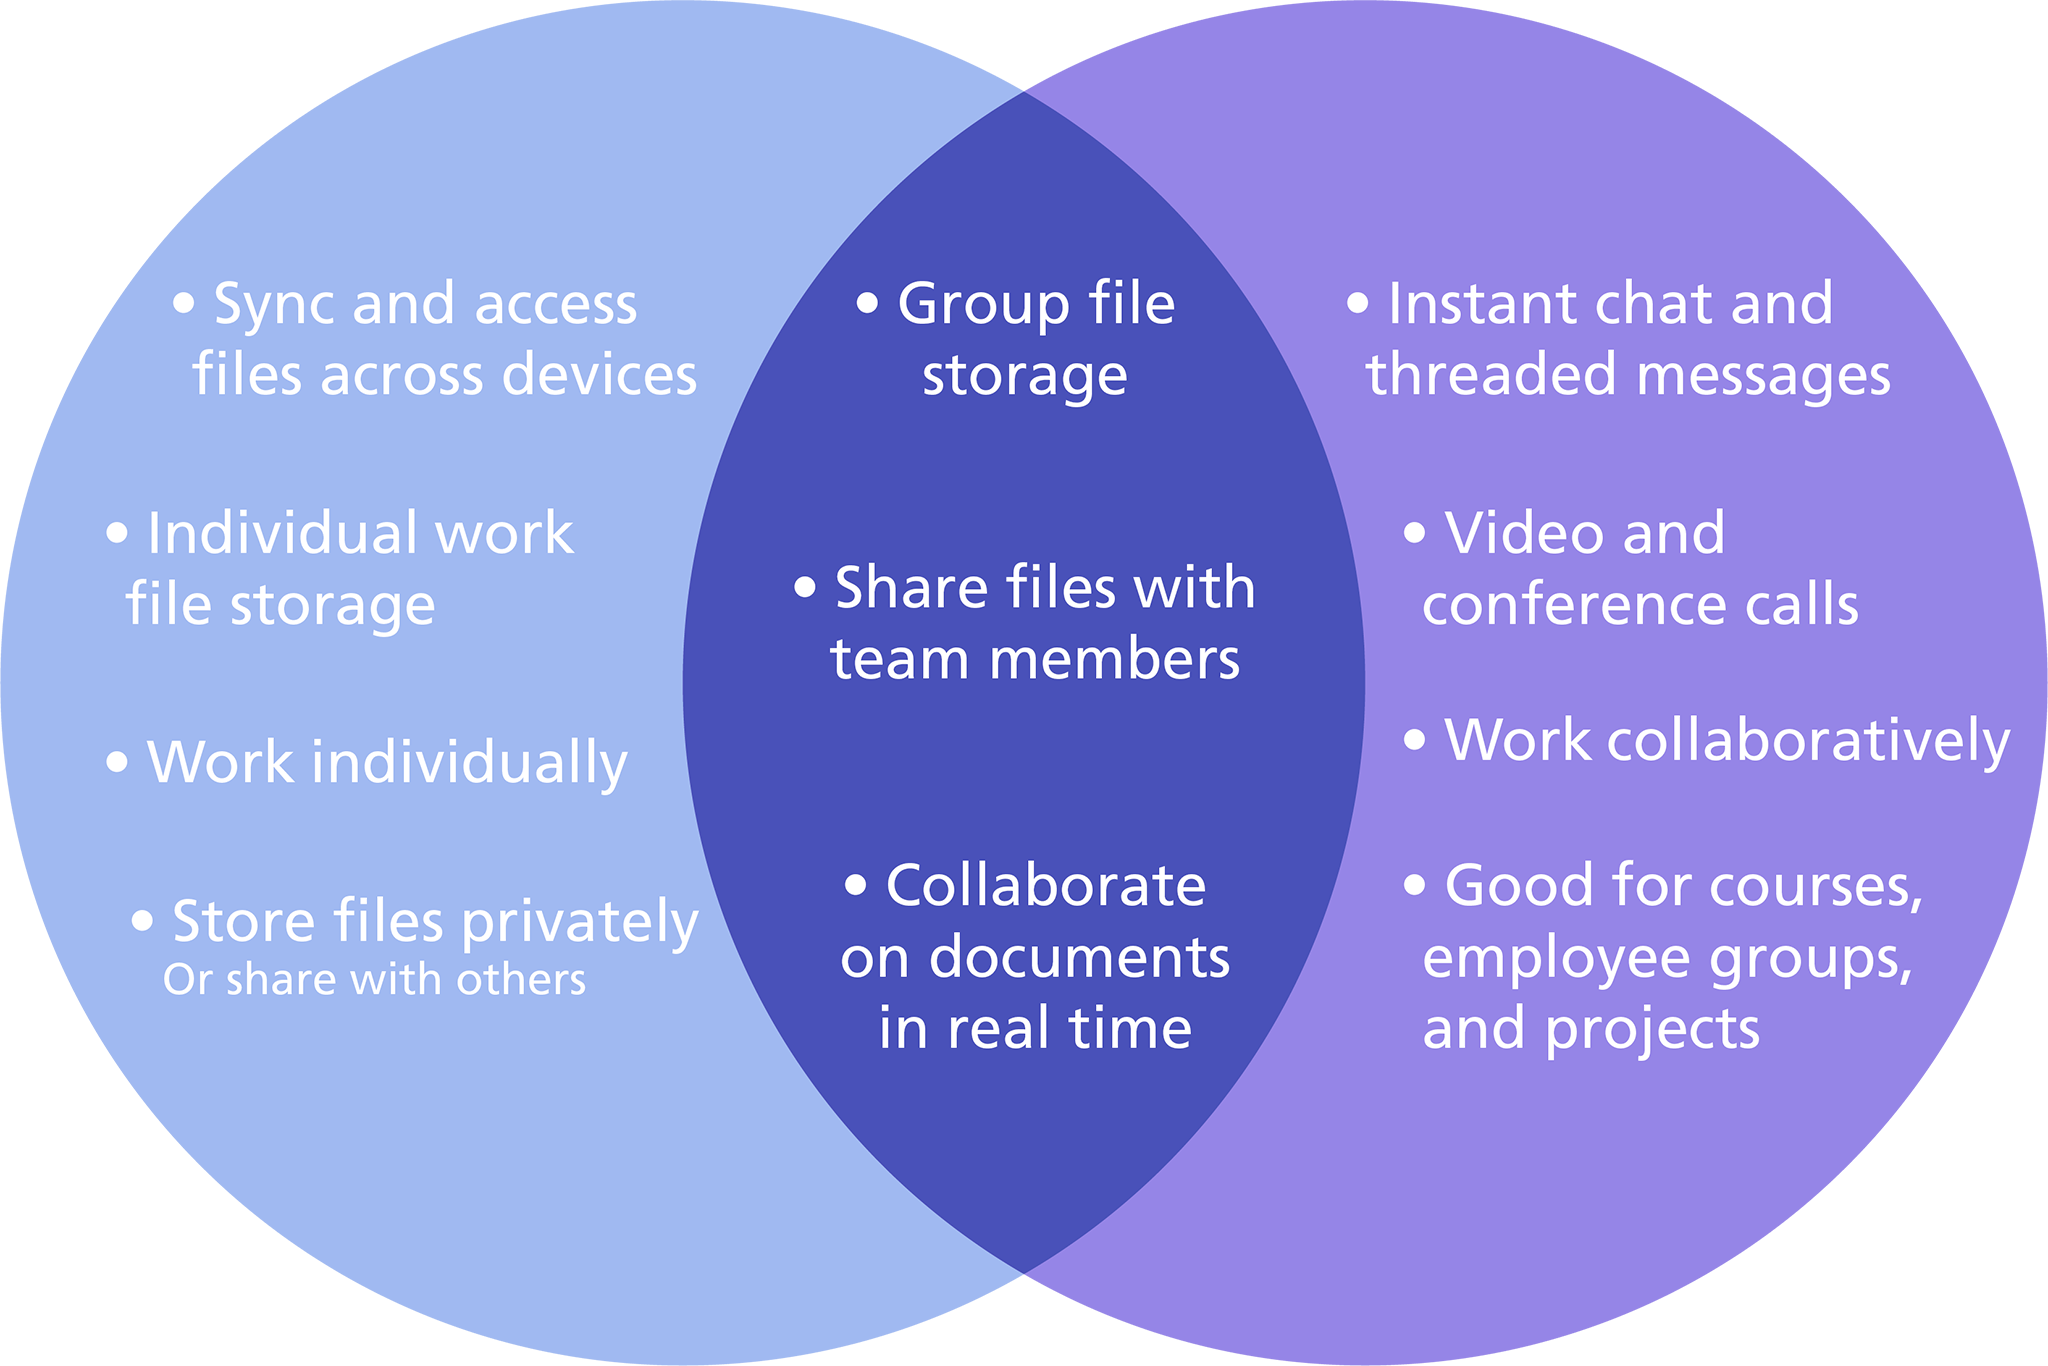 OneDrive: Sync and access files across devices, Individual work file storage, Work individually, Store files privately or share with others; Teams: Instant chat and threaded messages, Video and conference calls, Work collaboratively, Good for courses, employee groups, and projects; Both: Group file storage, Share files with team members, Collaborate on documents in real time